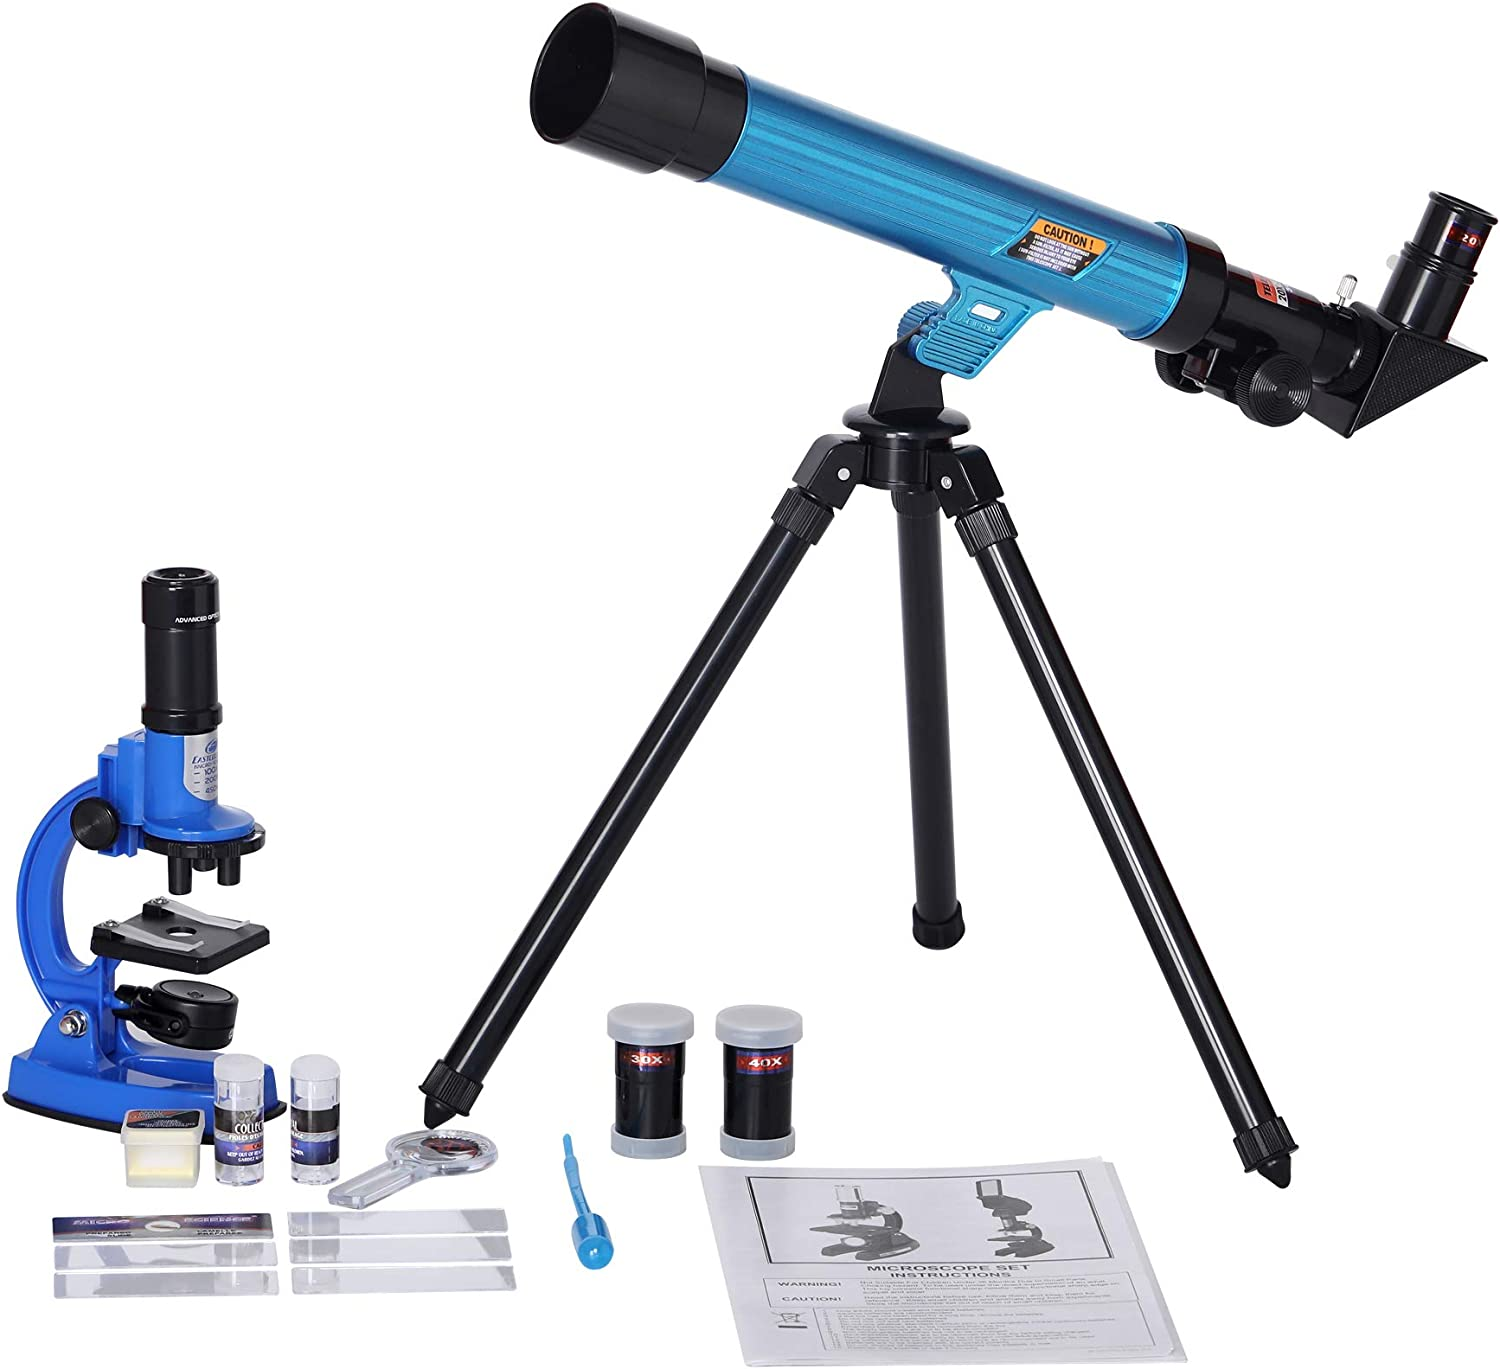 Children Students Science Educational Gifts Graduation Gift for Beginner Learning IDS Home Eastcolight 20351 Microscope and Telescope Set Toys for Kids